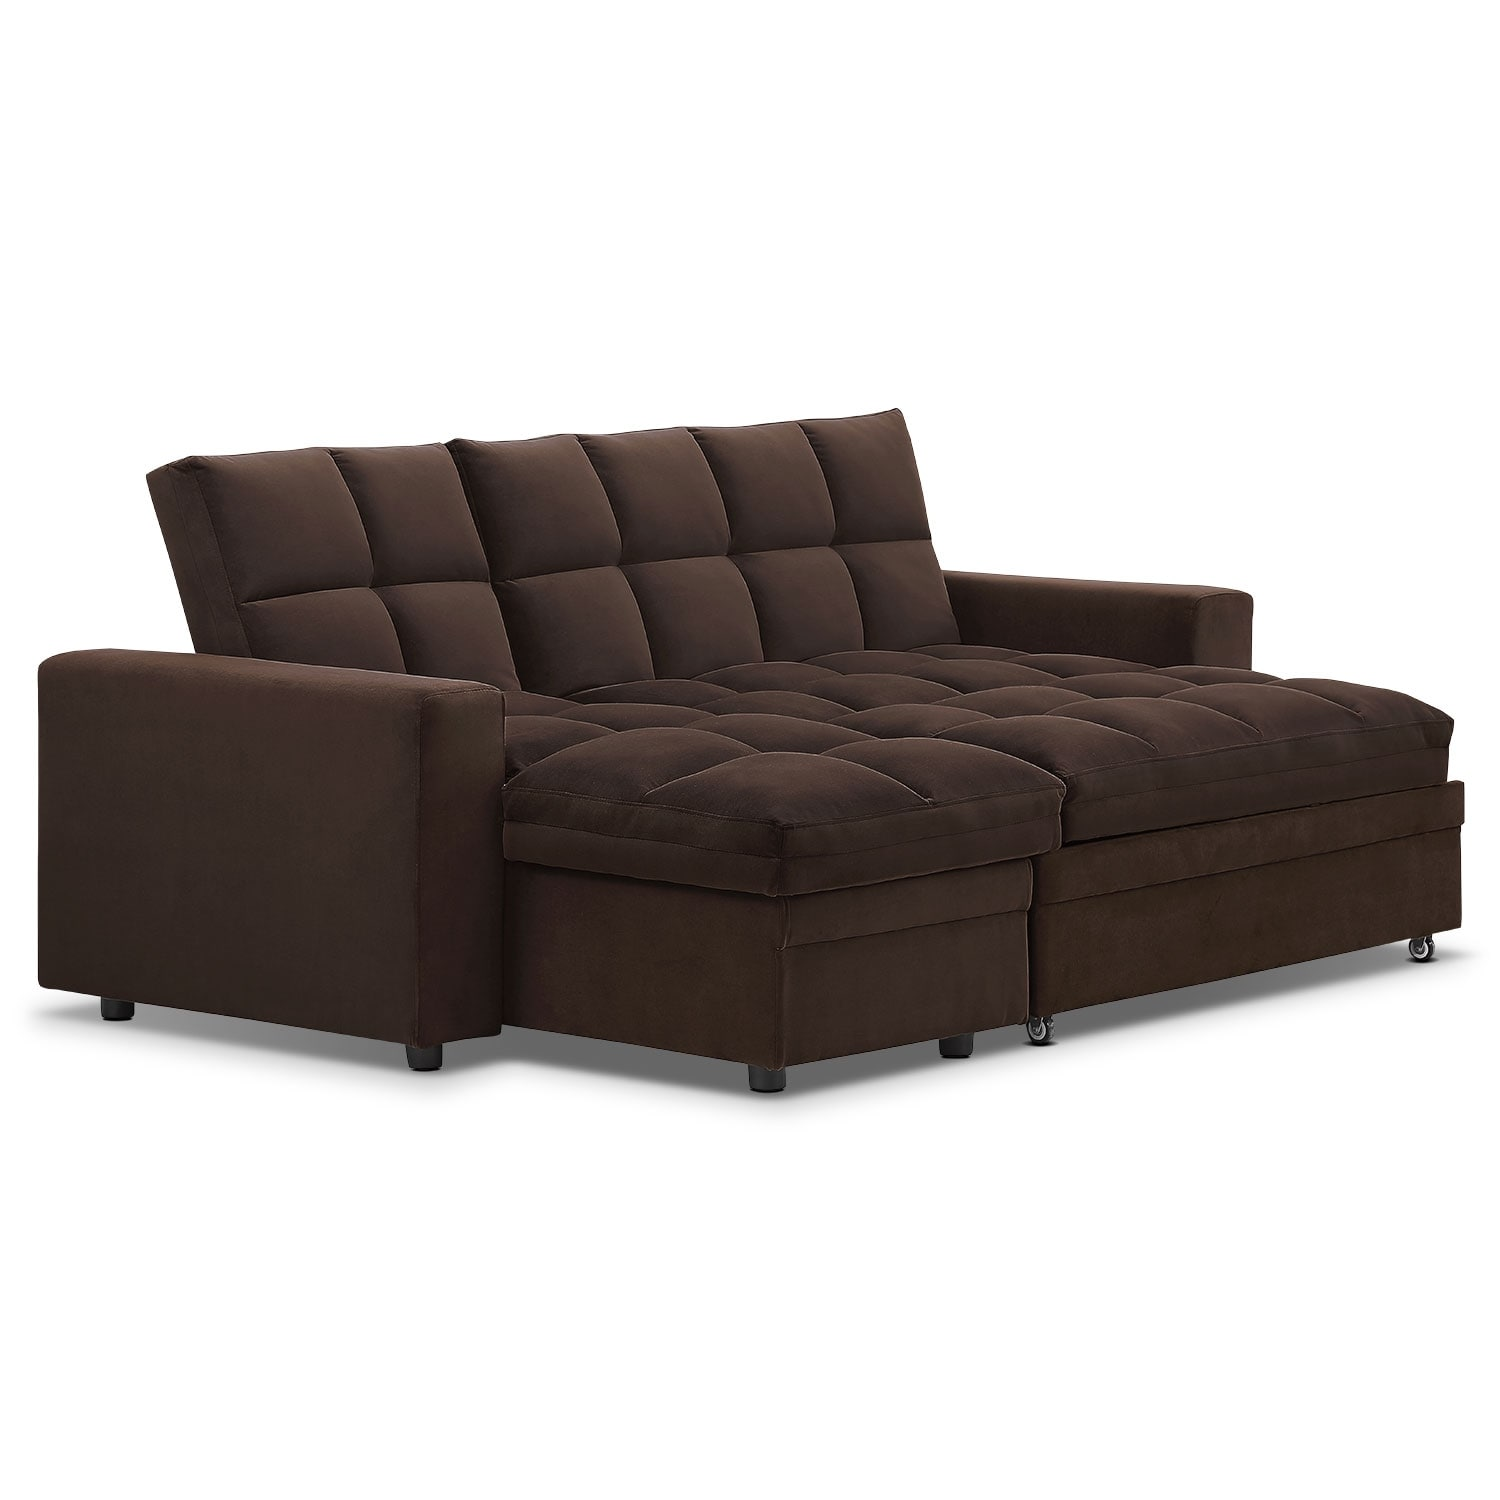 Metro Chaise Sofa Bed with Storage Brown